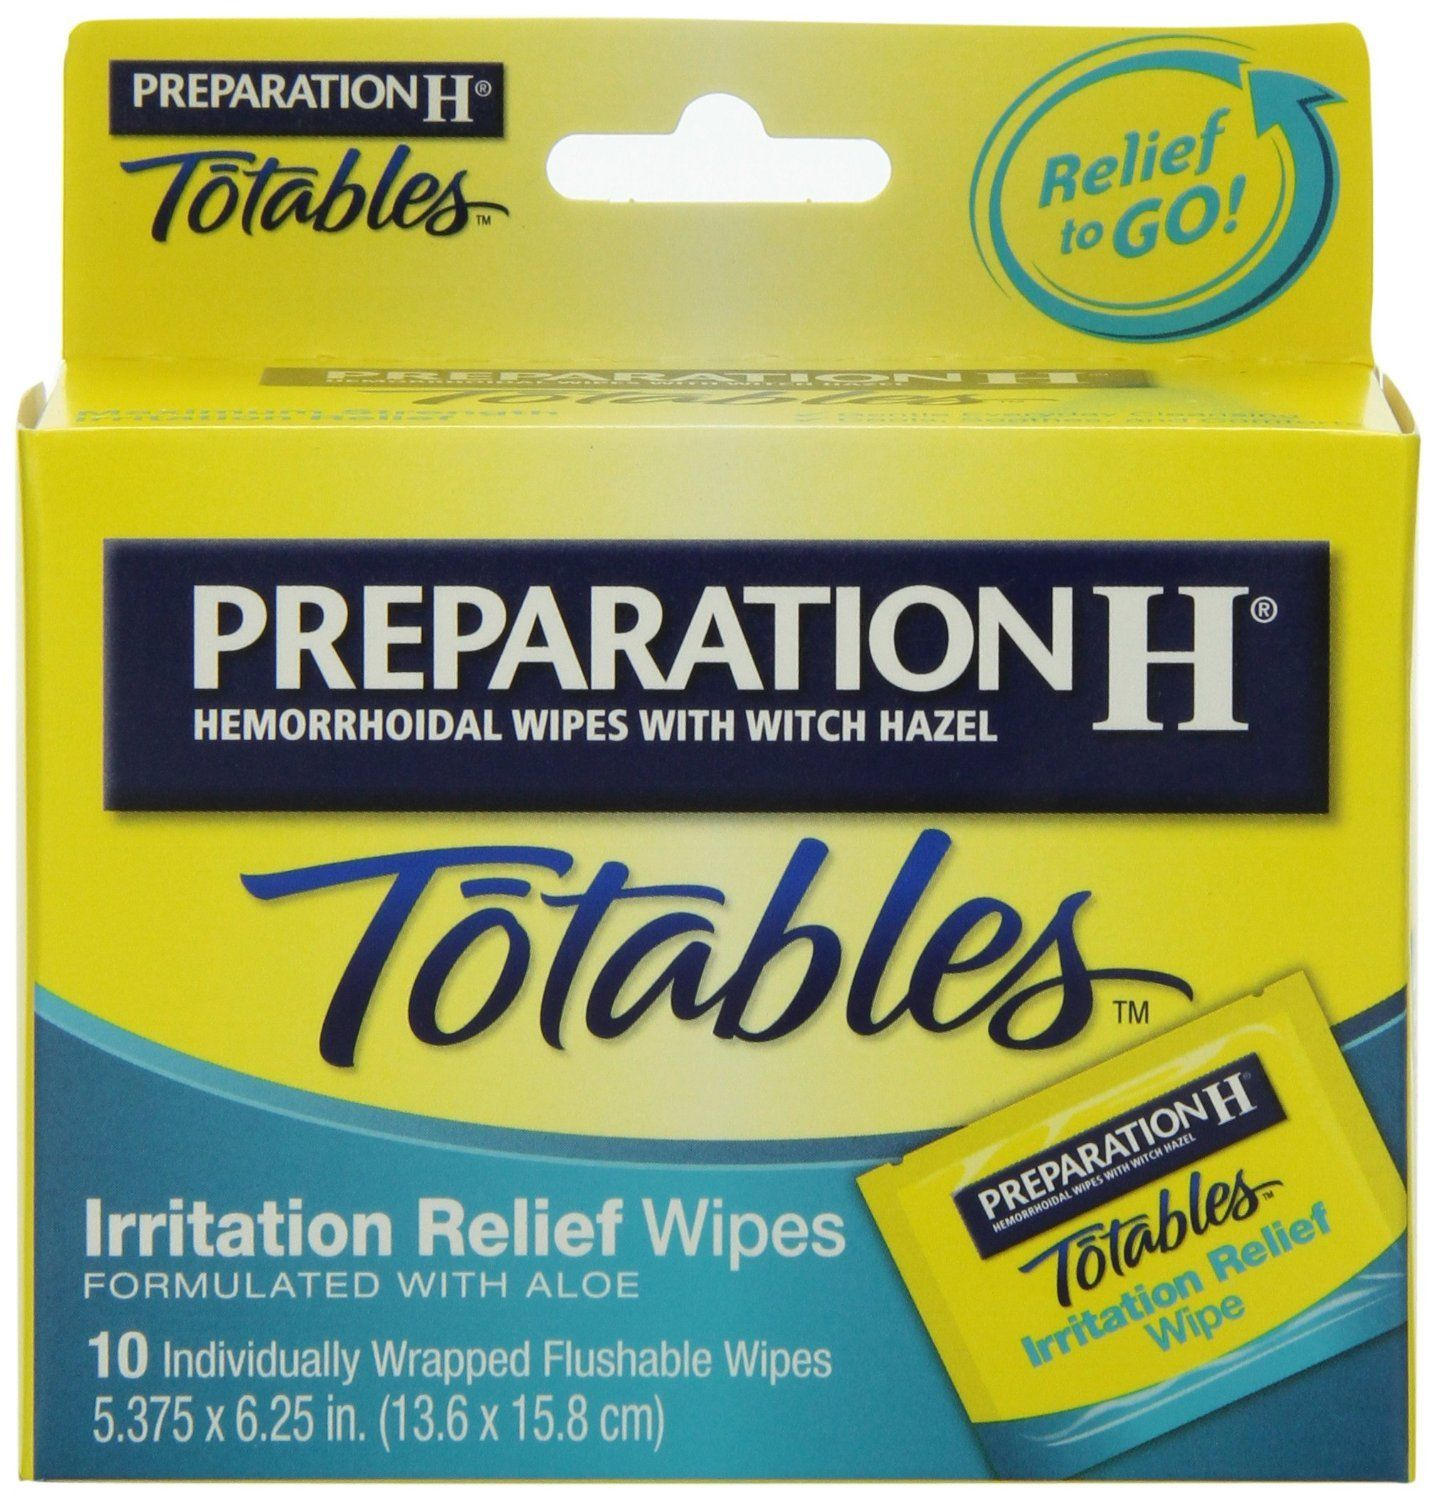 6 Pack Preparation H Totables Irritation Relief Wipes 10 Each